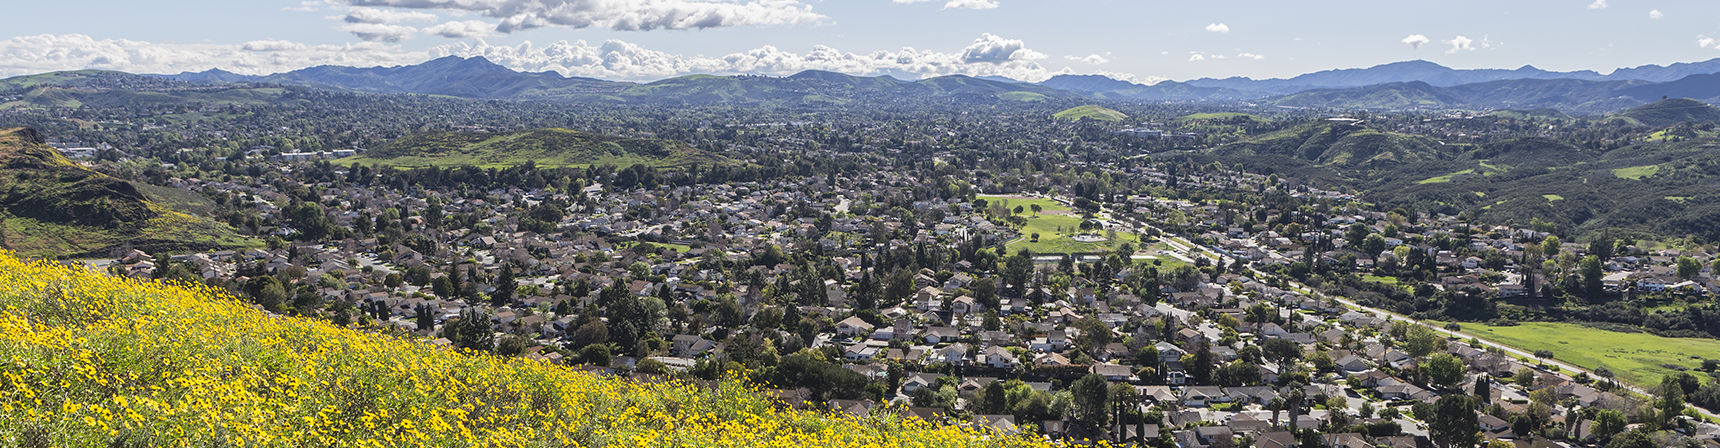 Houses within the Conejo Valley with mountains in the distance.